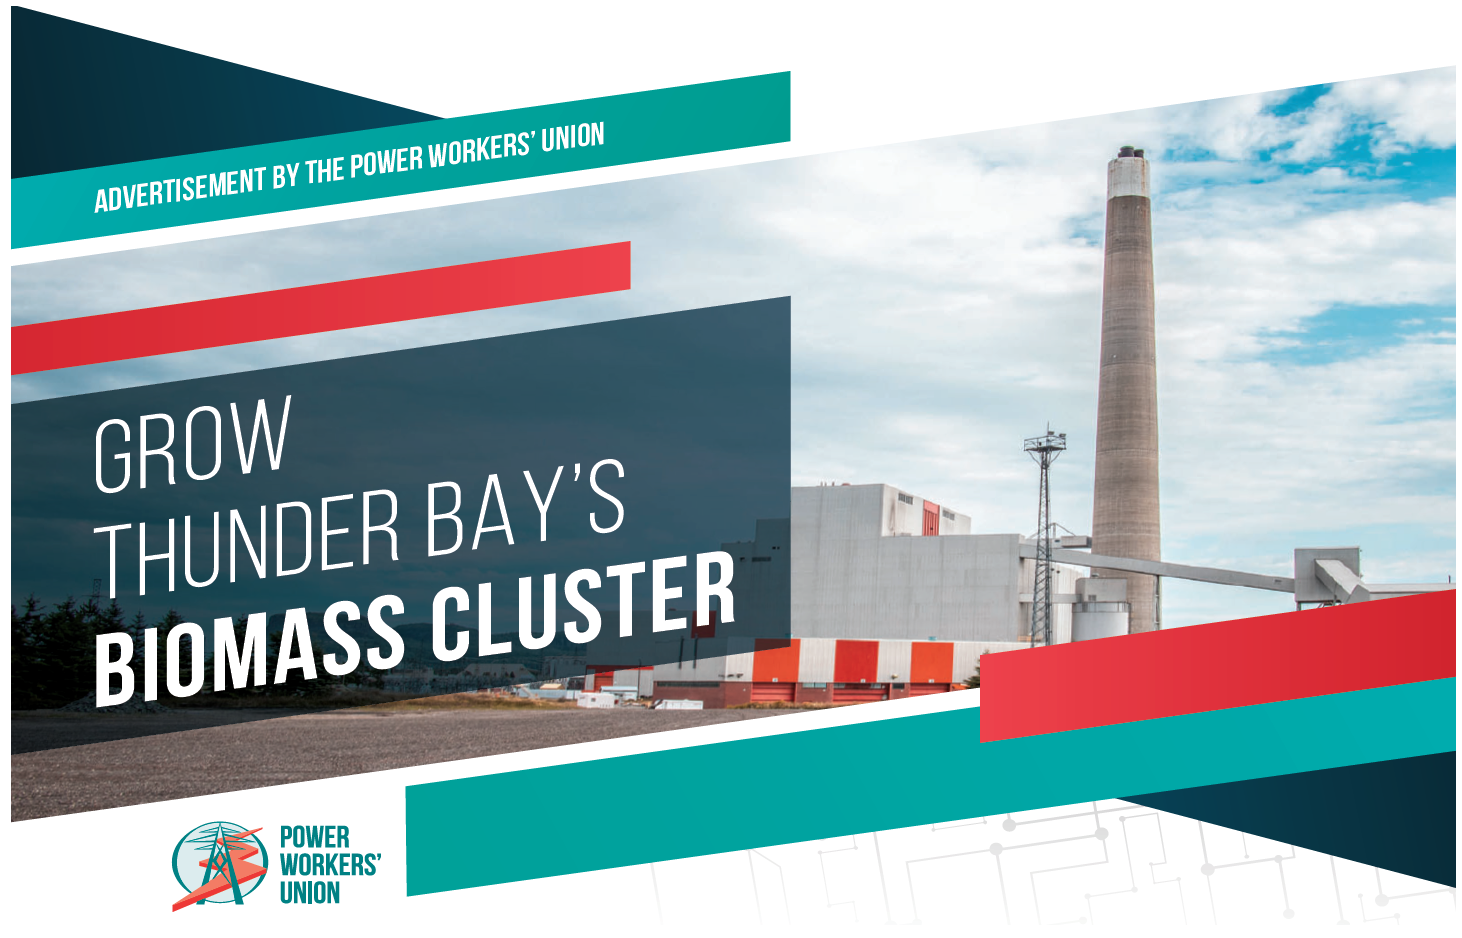 GROW THUNDER BAY'S BIOMASS CLUSTER